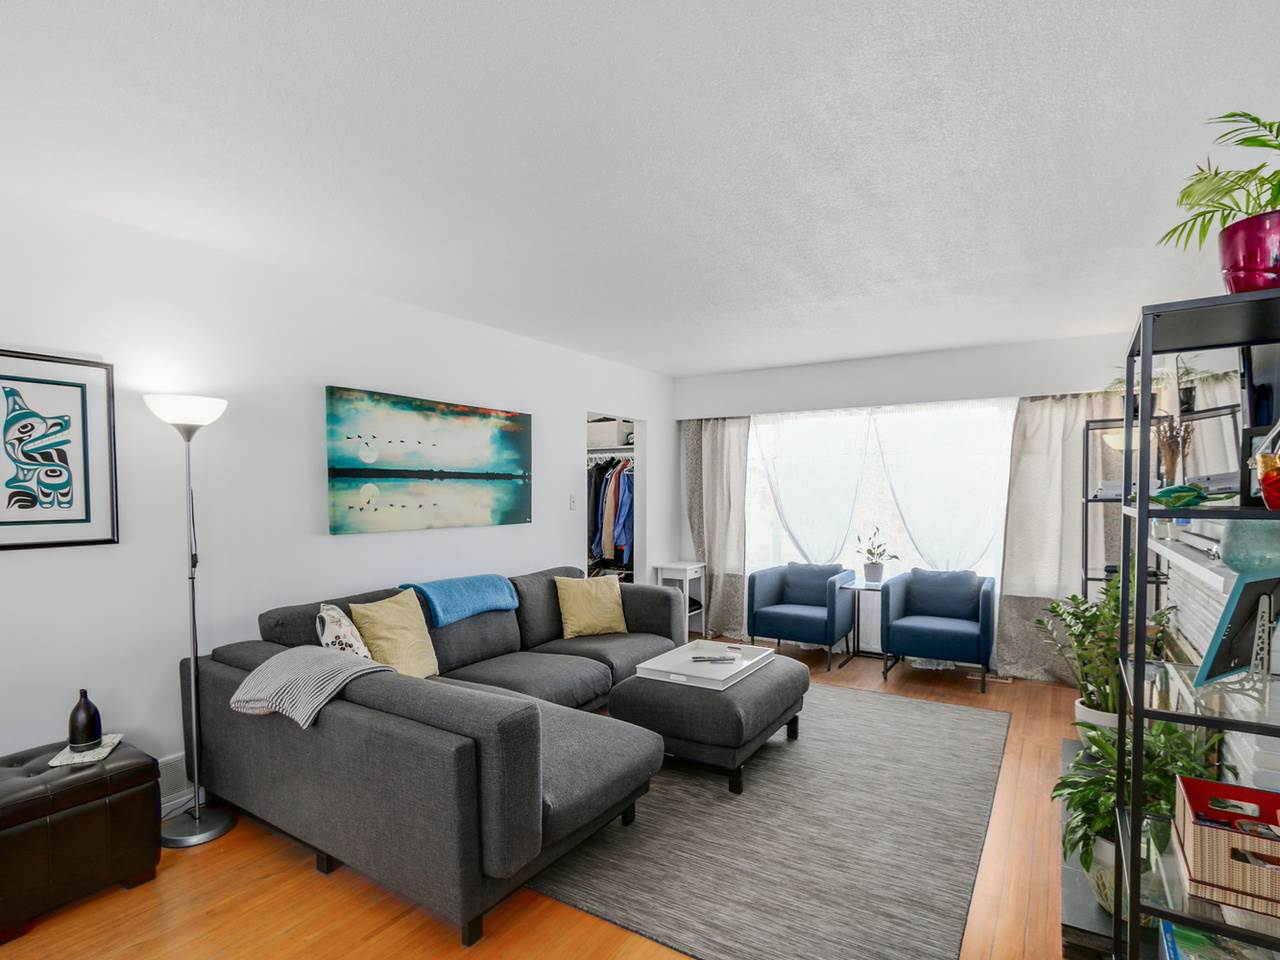 Photo 5: 2542 E 28TH AVENUE in Vancouver: Collingwood VE House for sale (Vancouver East)  : MLS® # R2052154